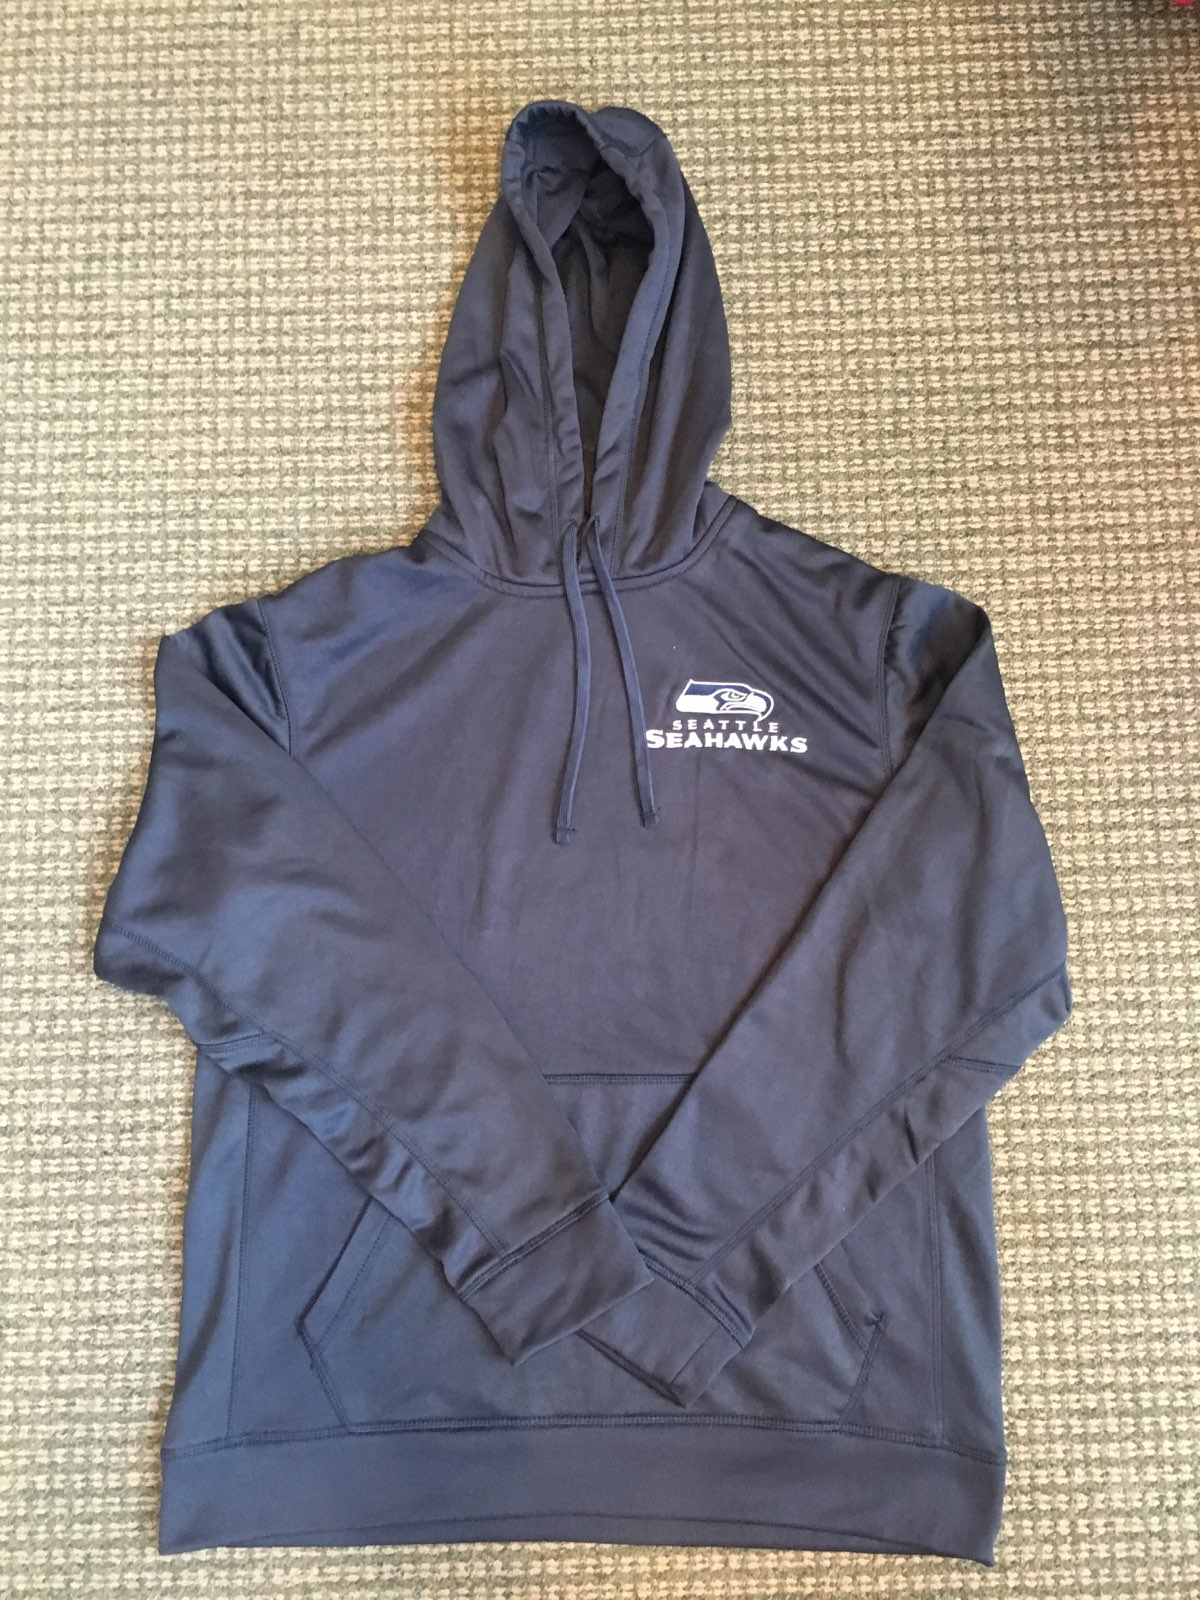 Seahawks Dunbrooke Hoodie Navy , 100% Polyester Size Large